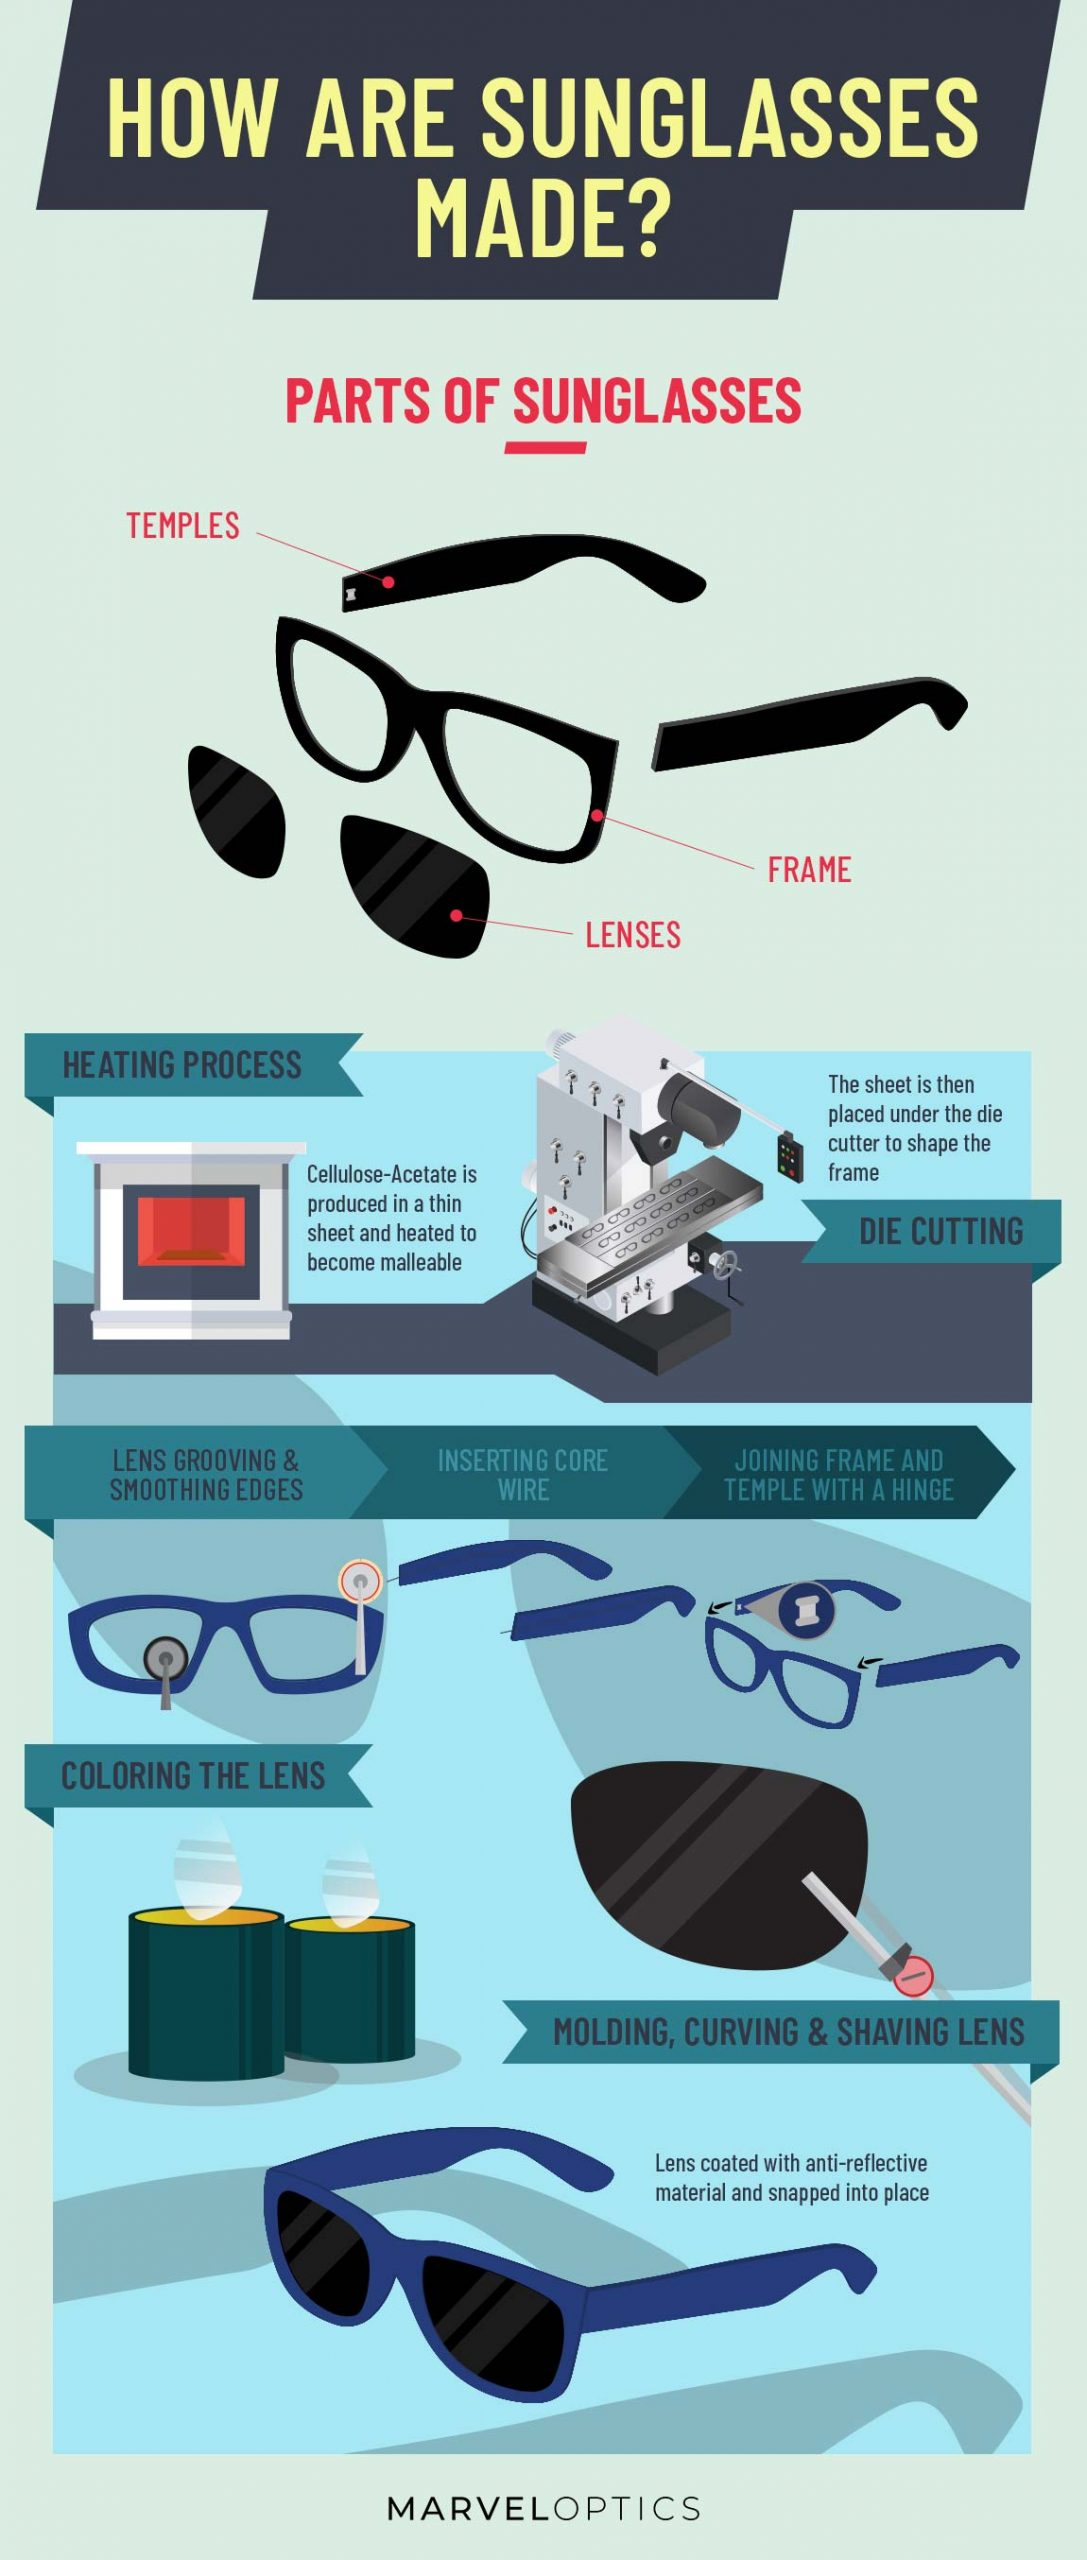 How are sunglasses made